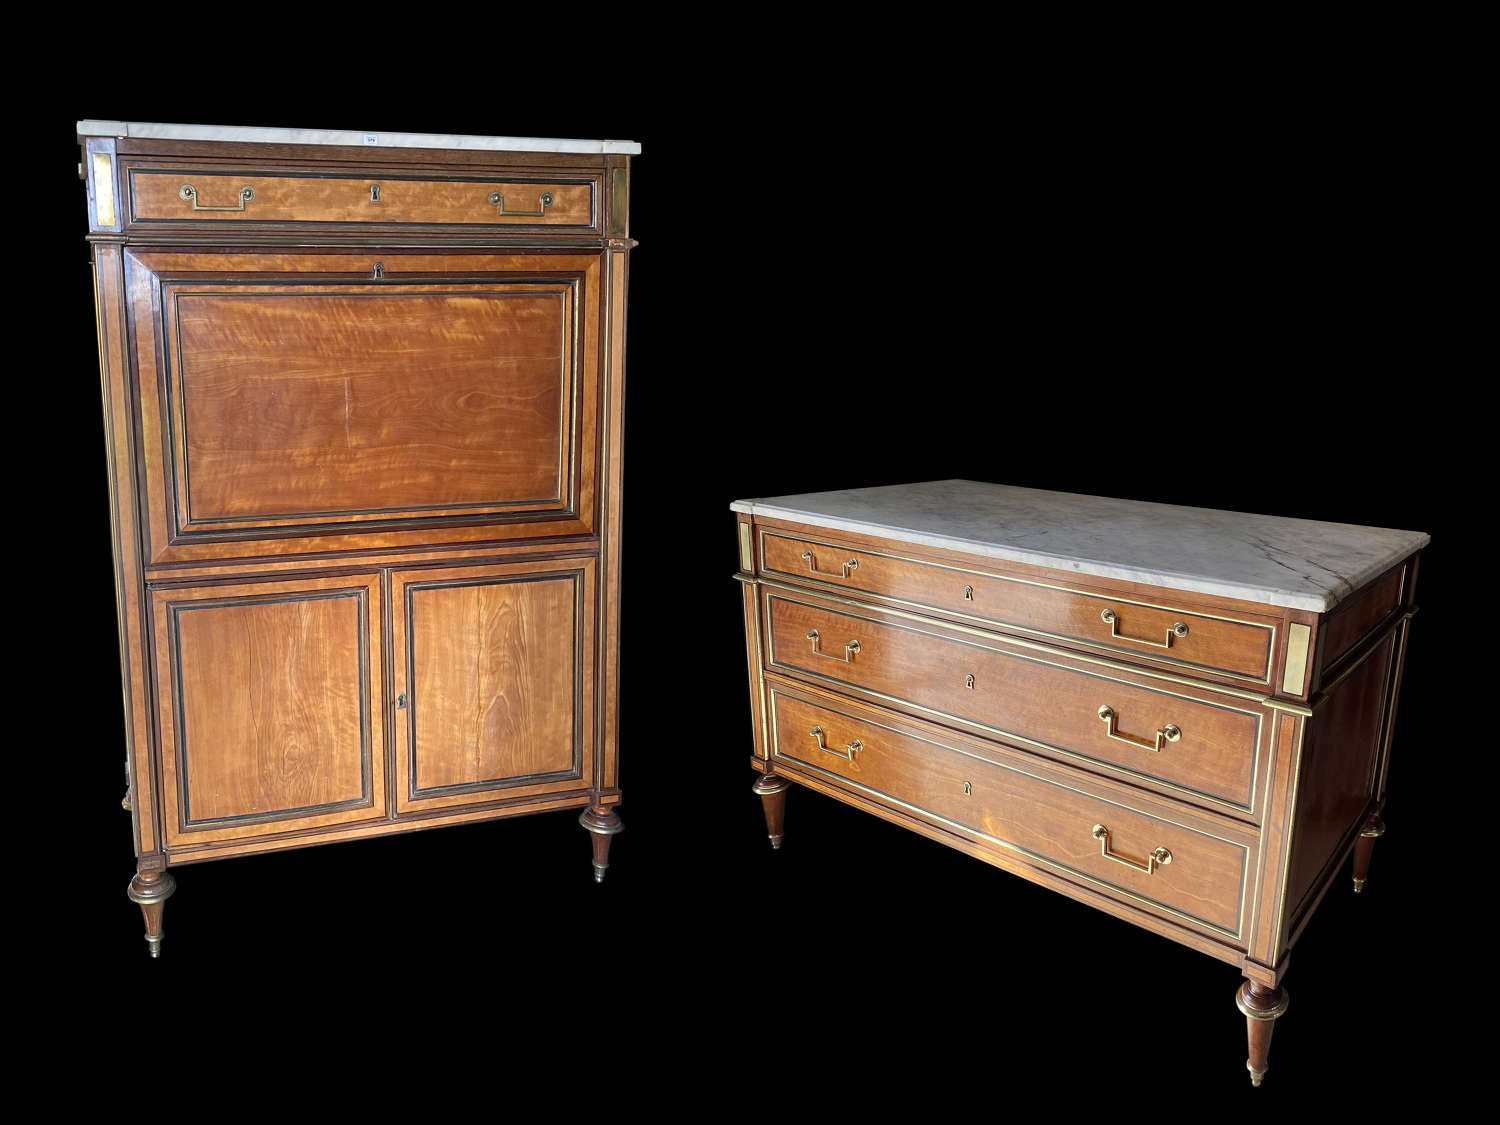 A FINE LOUIS XVI PERIOD SATINWOOD COMMODE